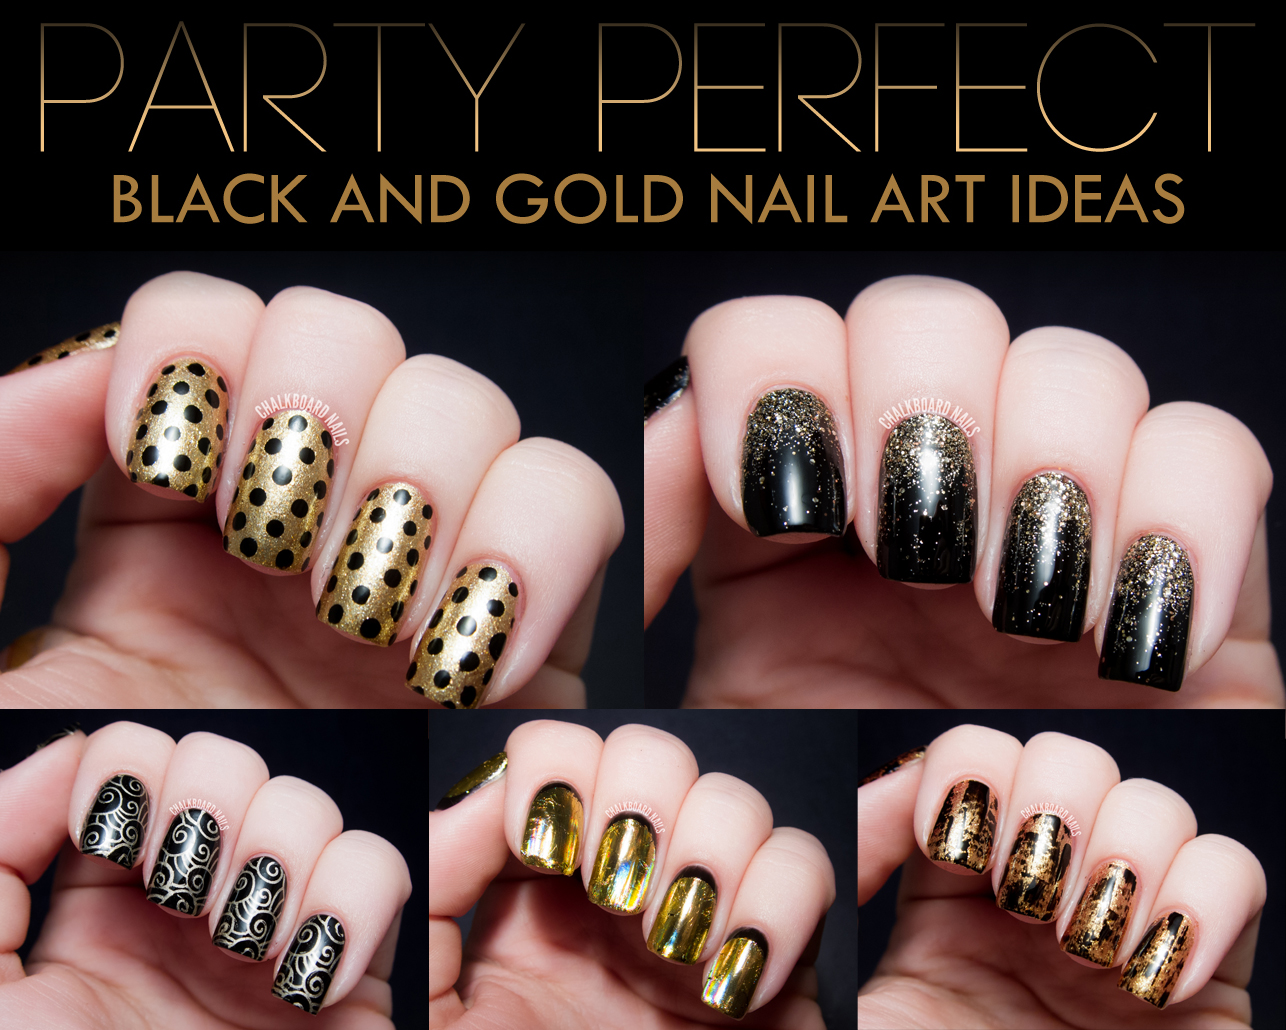 Party Perfect: Black and Gold Nail Art Ideas | Chalkboard Nails ...